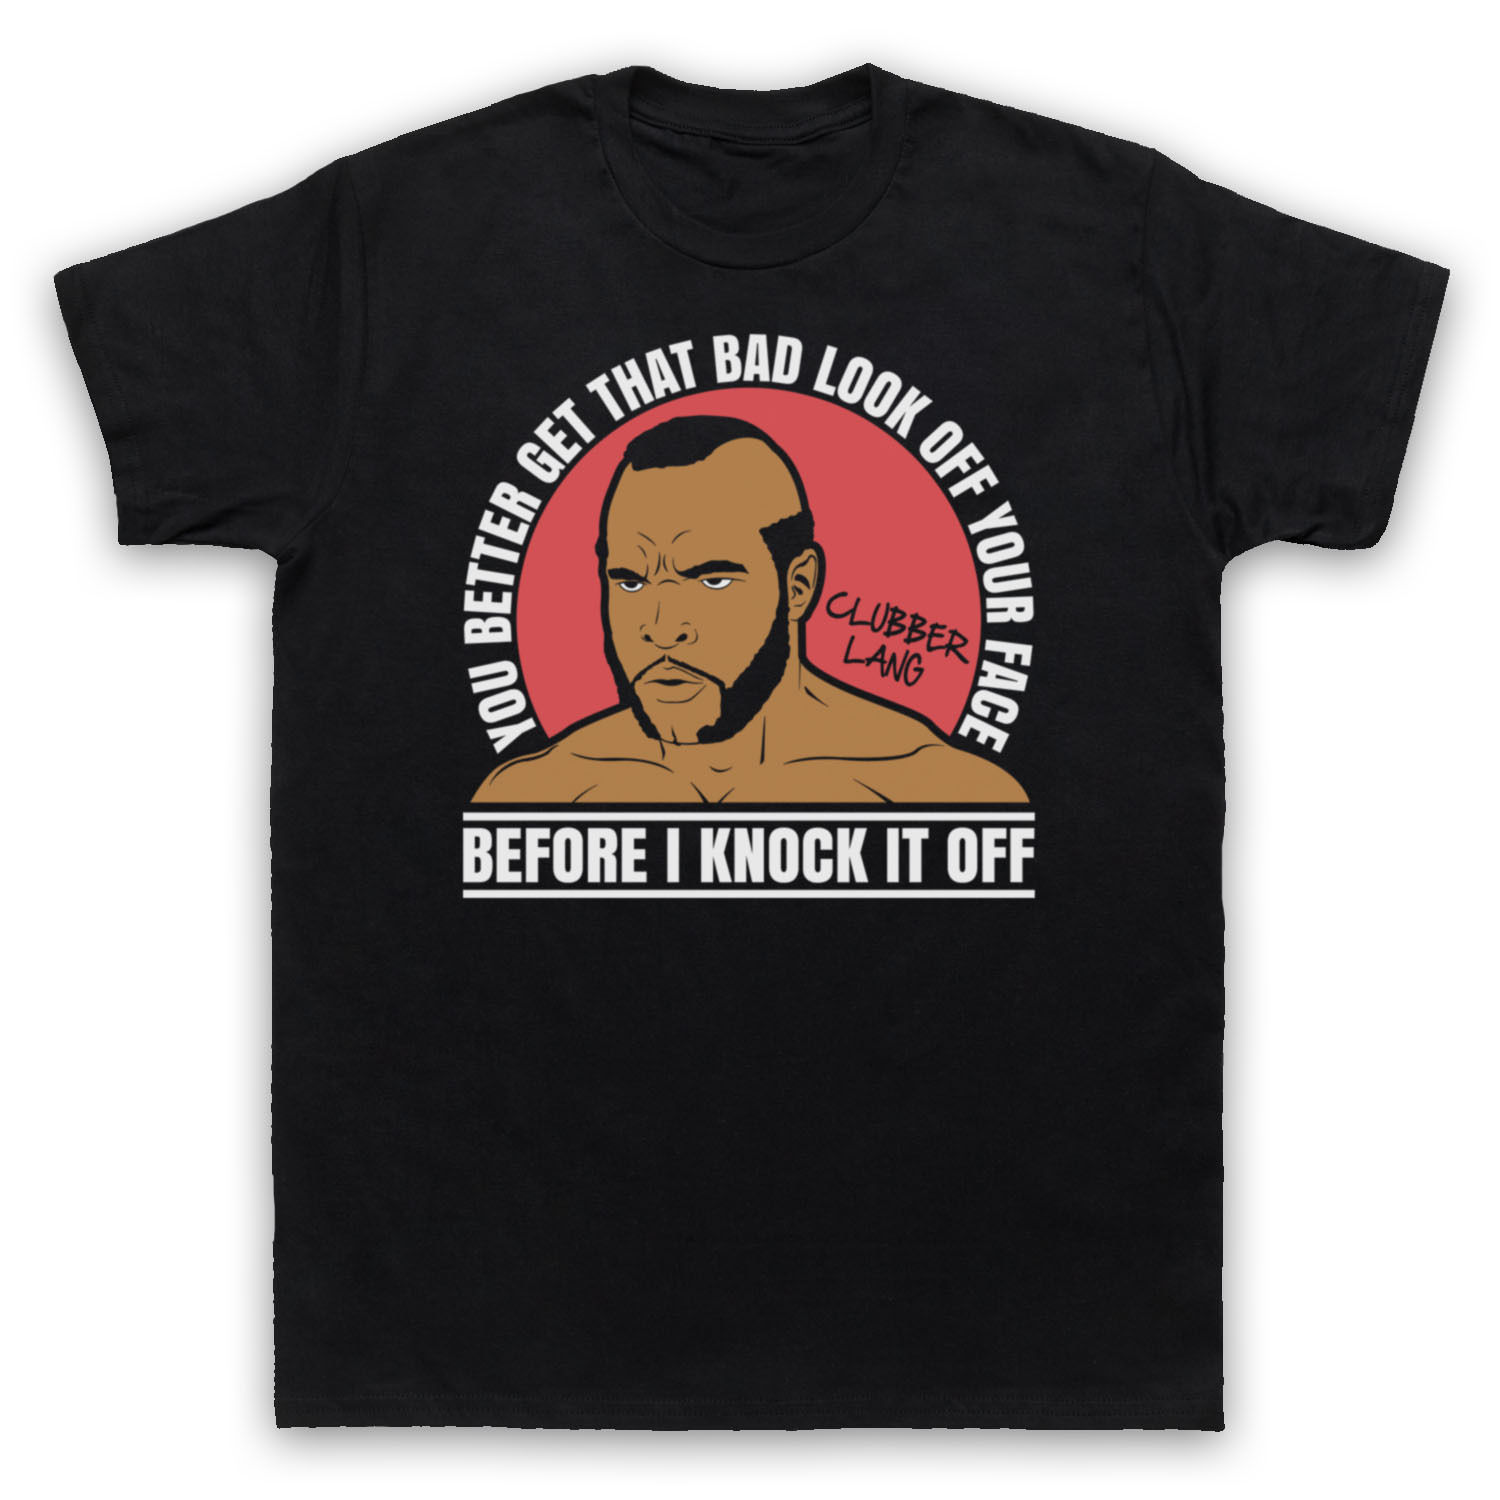 BAD LOOK CLUBBER LANG ROCKY 3 UNOFFICIAL T-SHIRT MENS LADIES KIDS SIZES COLOURS